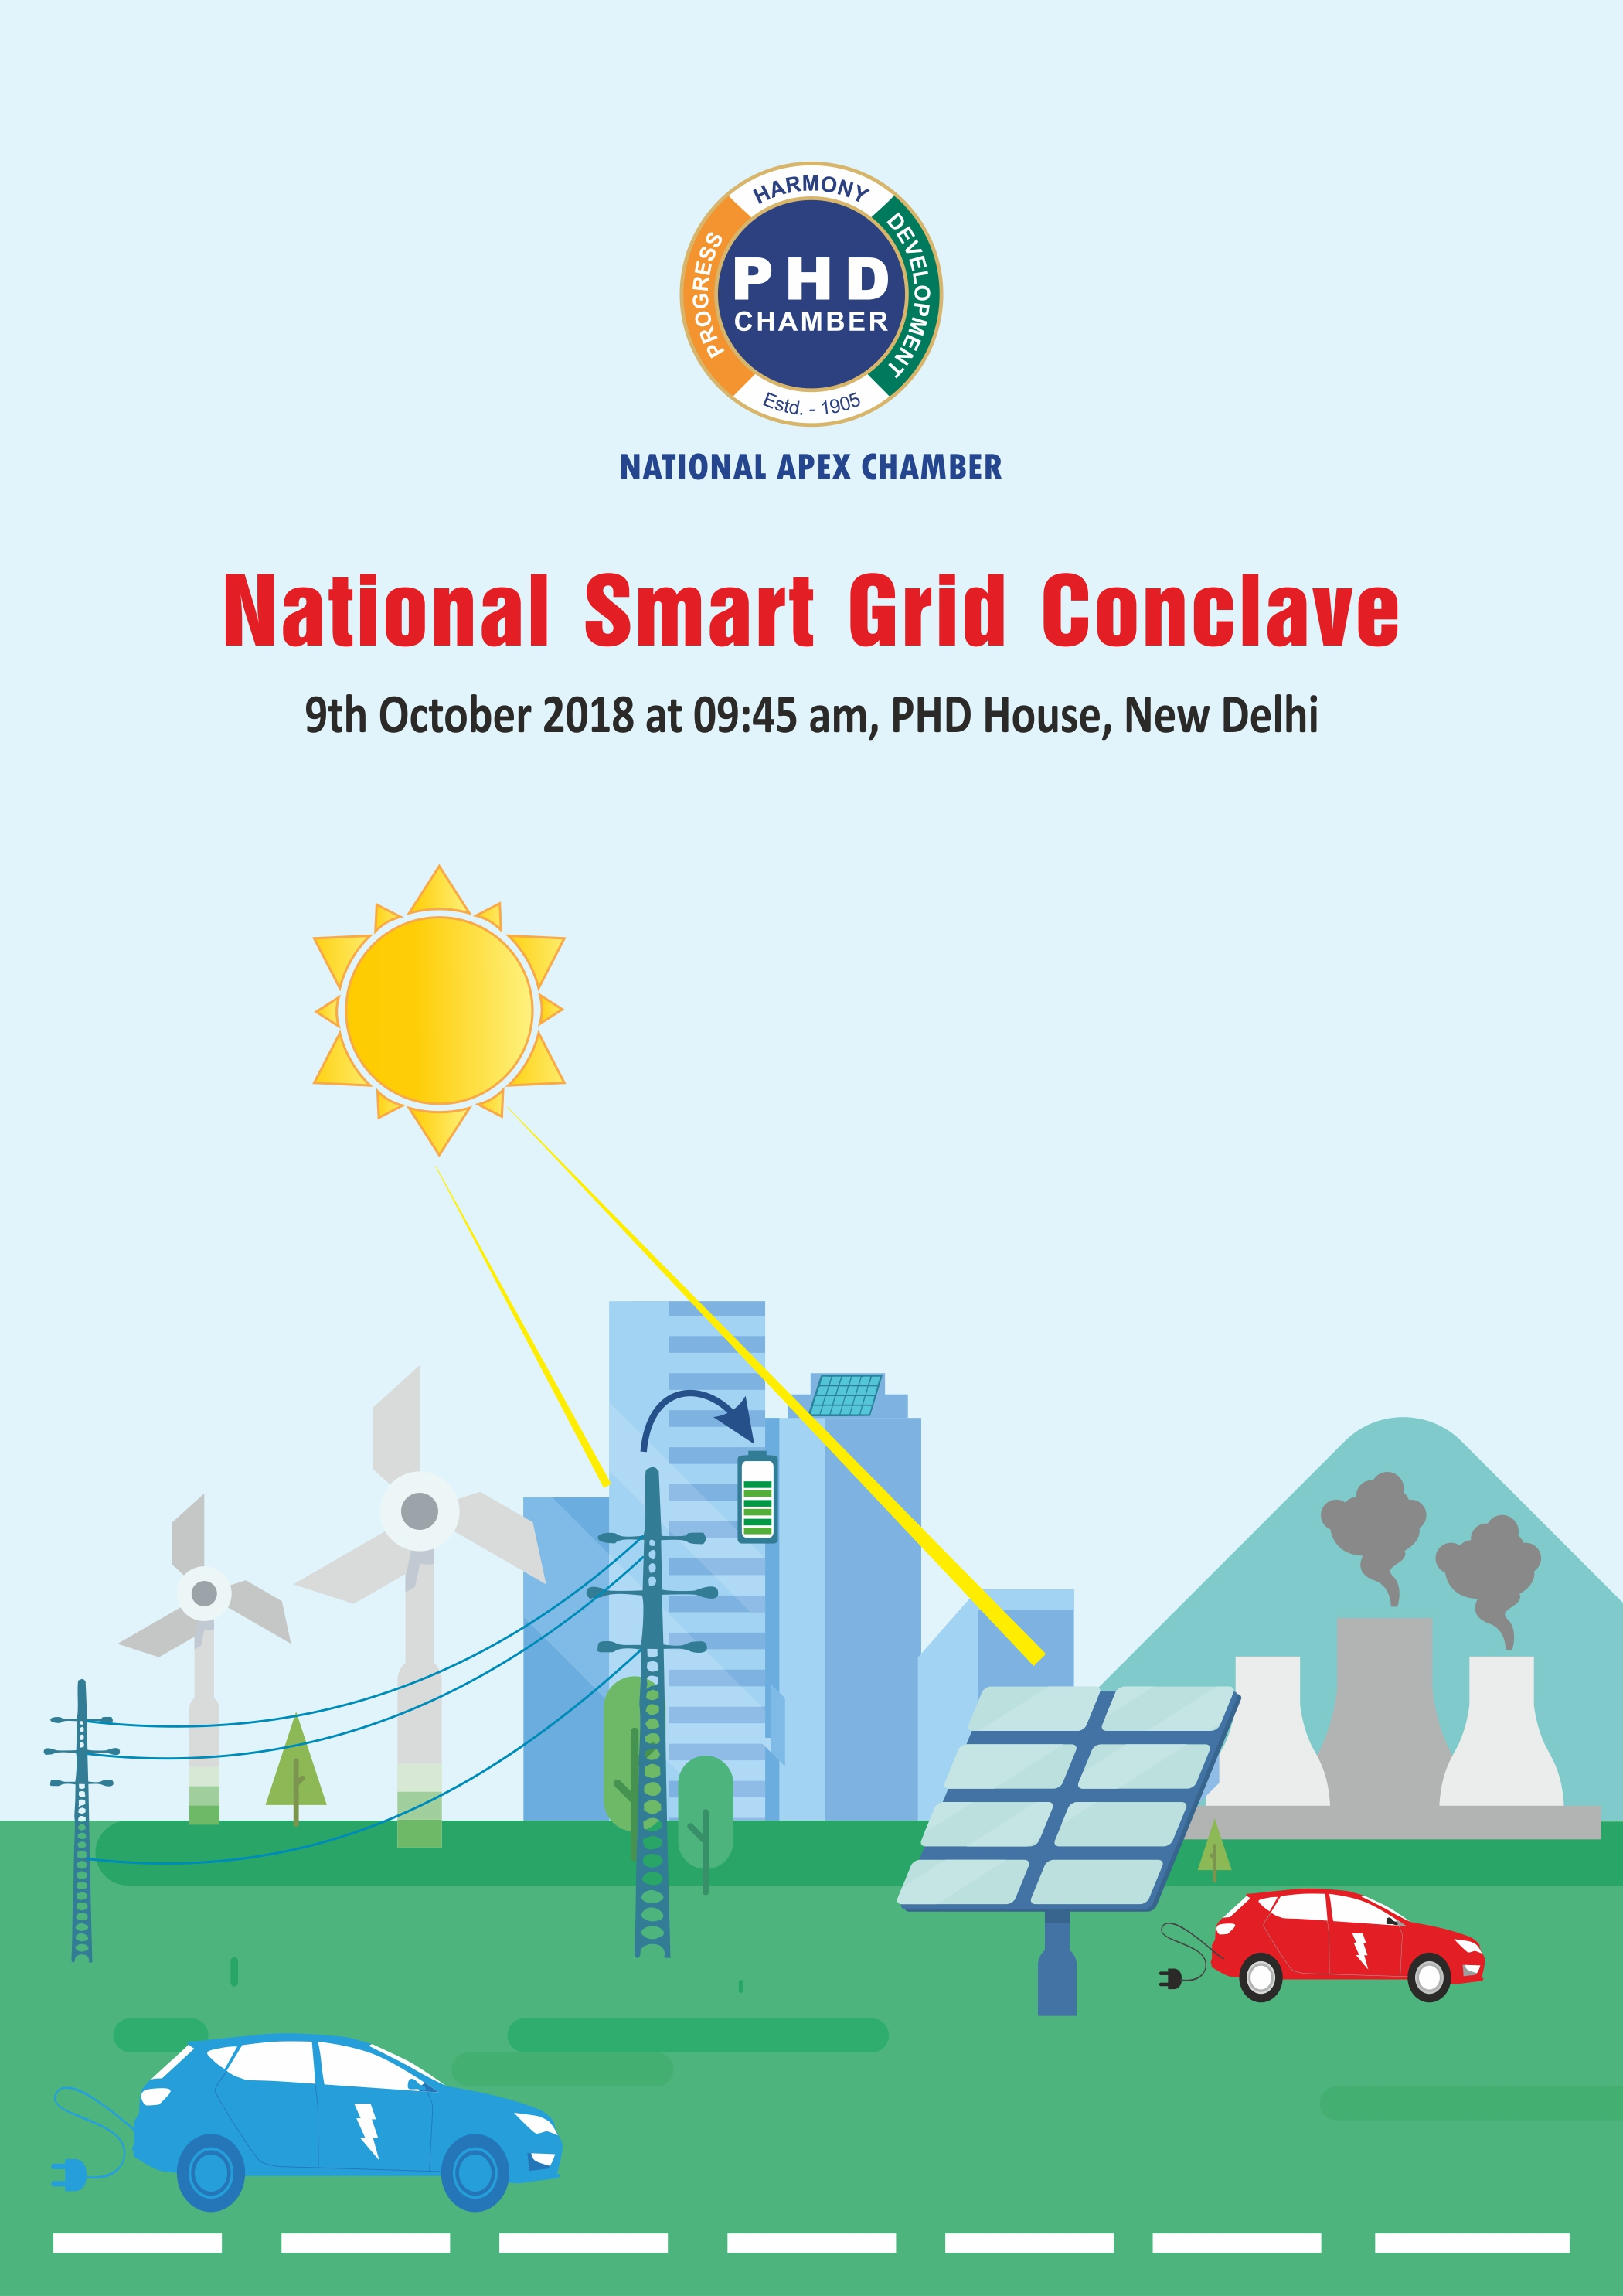 National Smart Grid Conclave